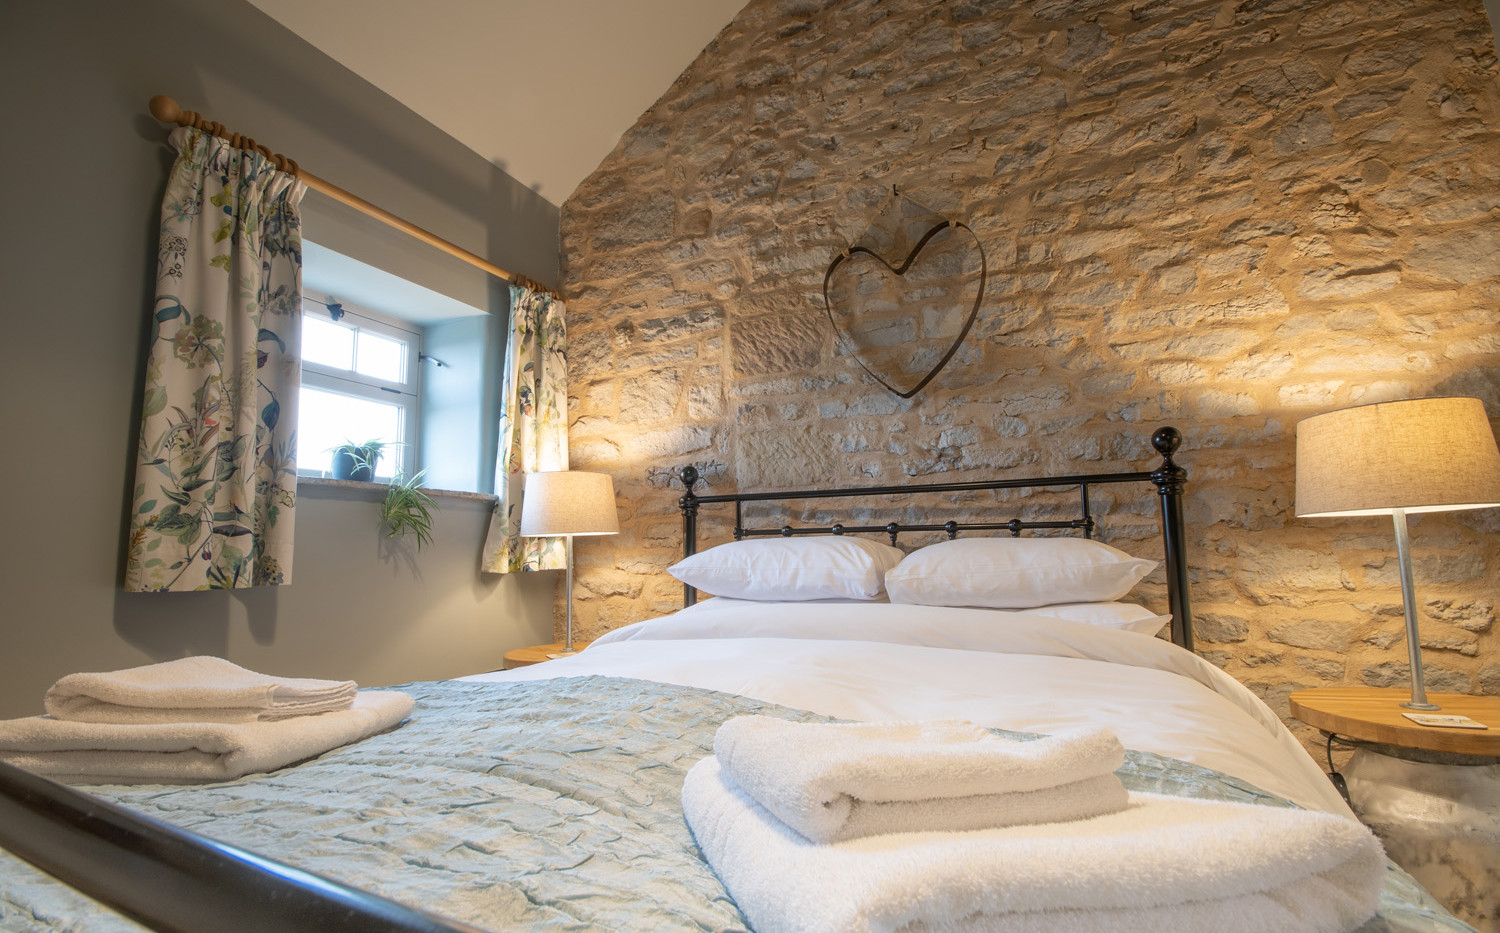 Bedroom with feature stone walls and original beams